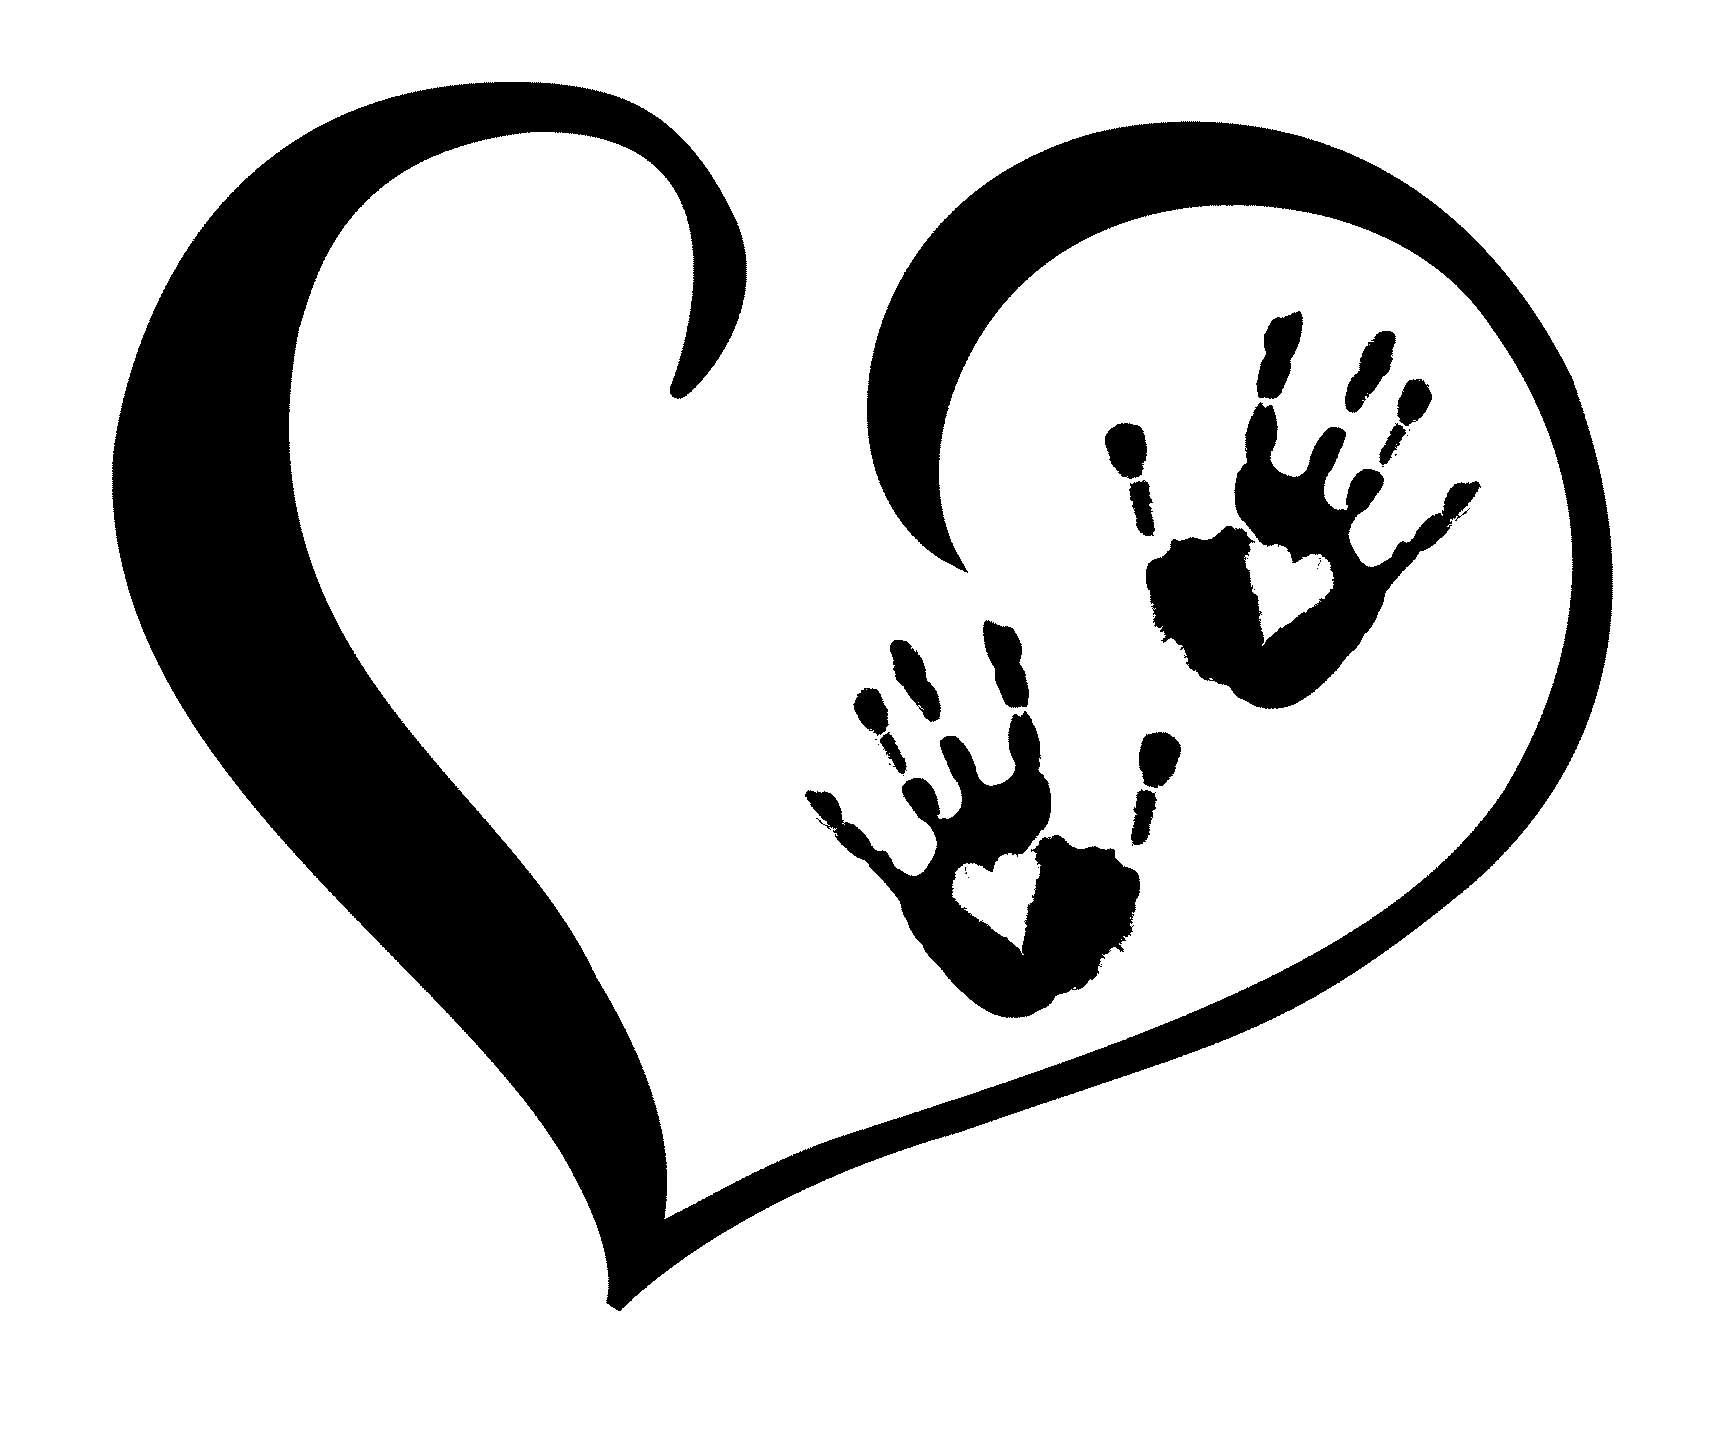 Free printable clipart images of hands and hearts picture stock Free Handprint Heart Cliparts, Download Free Clip Art, Free Clip Art ... picture stock